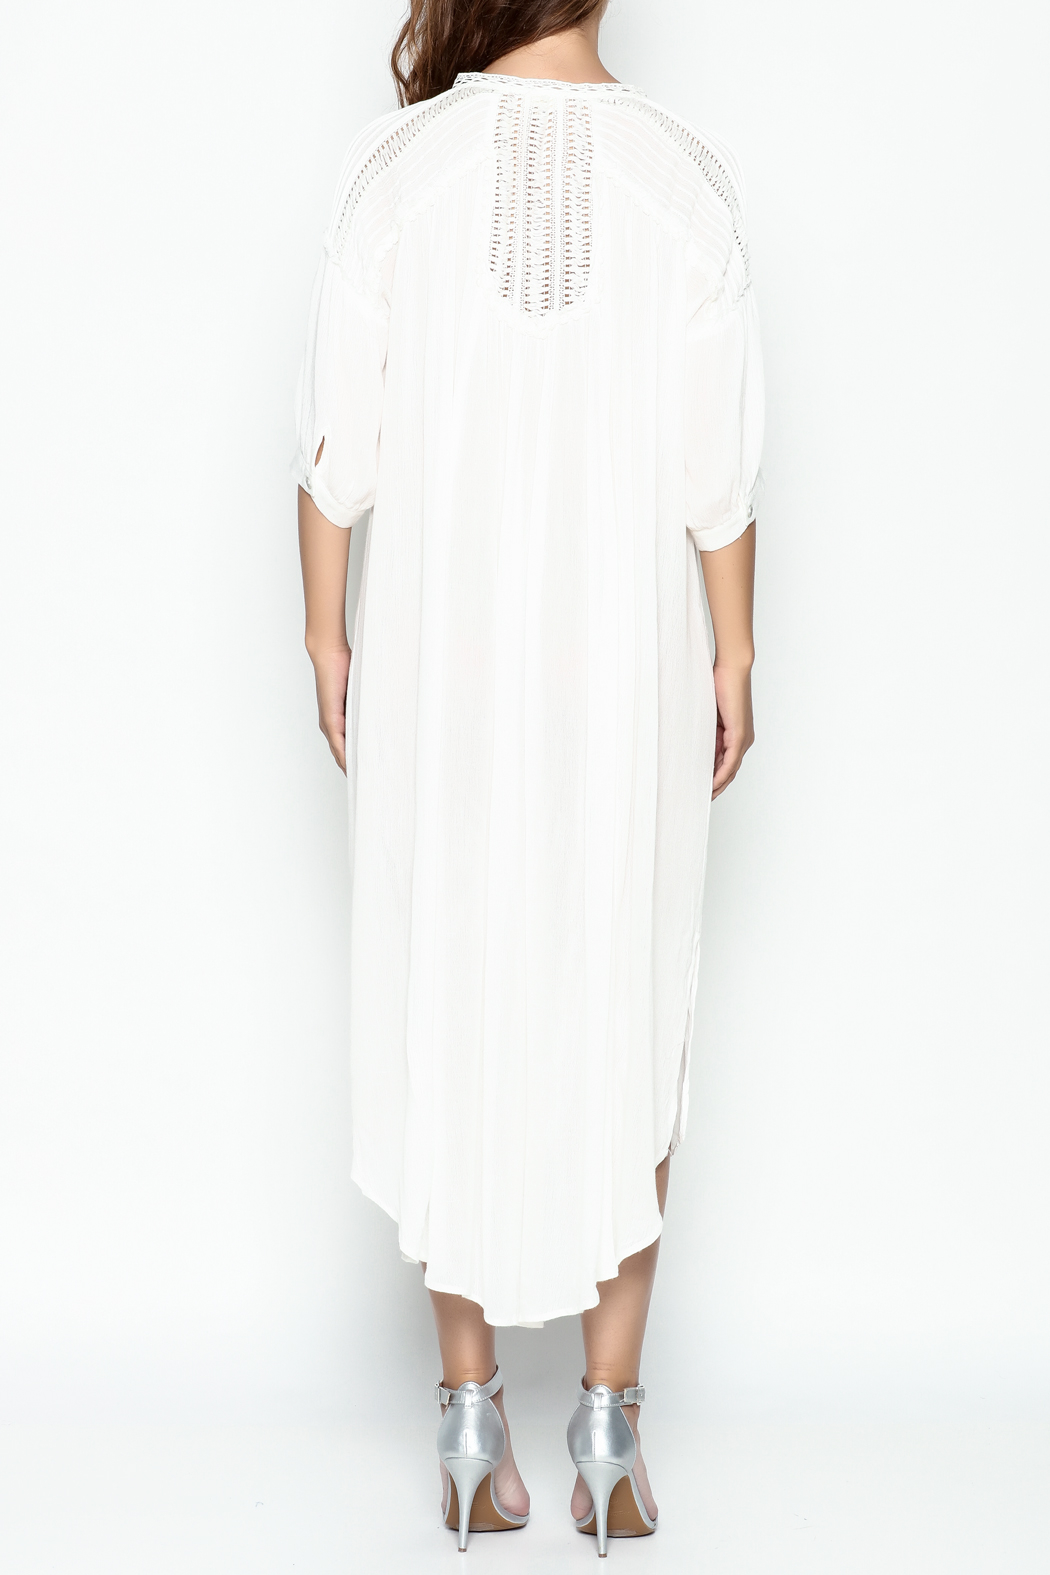 POL Pintuck Button Down Dress - Back Cropped Image